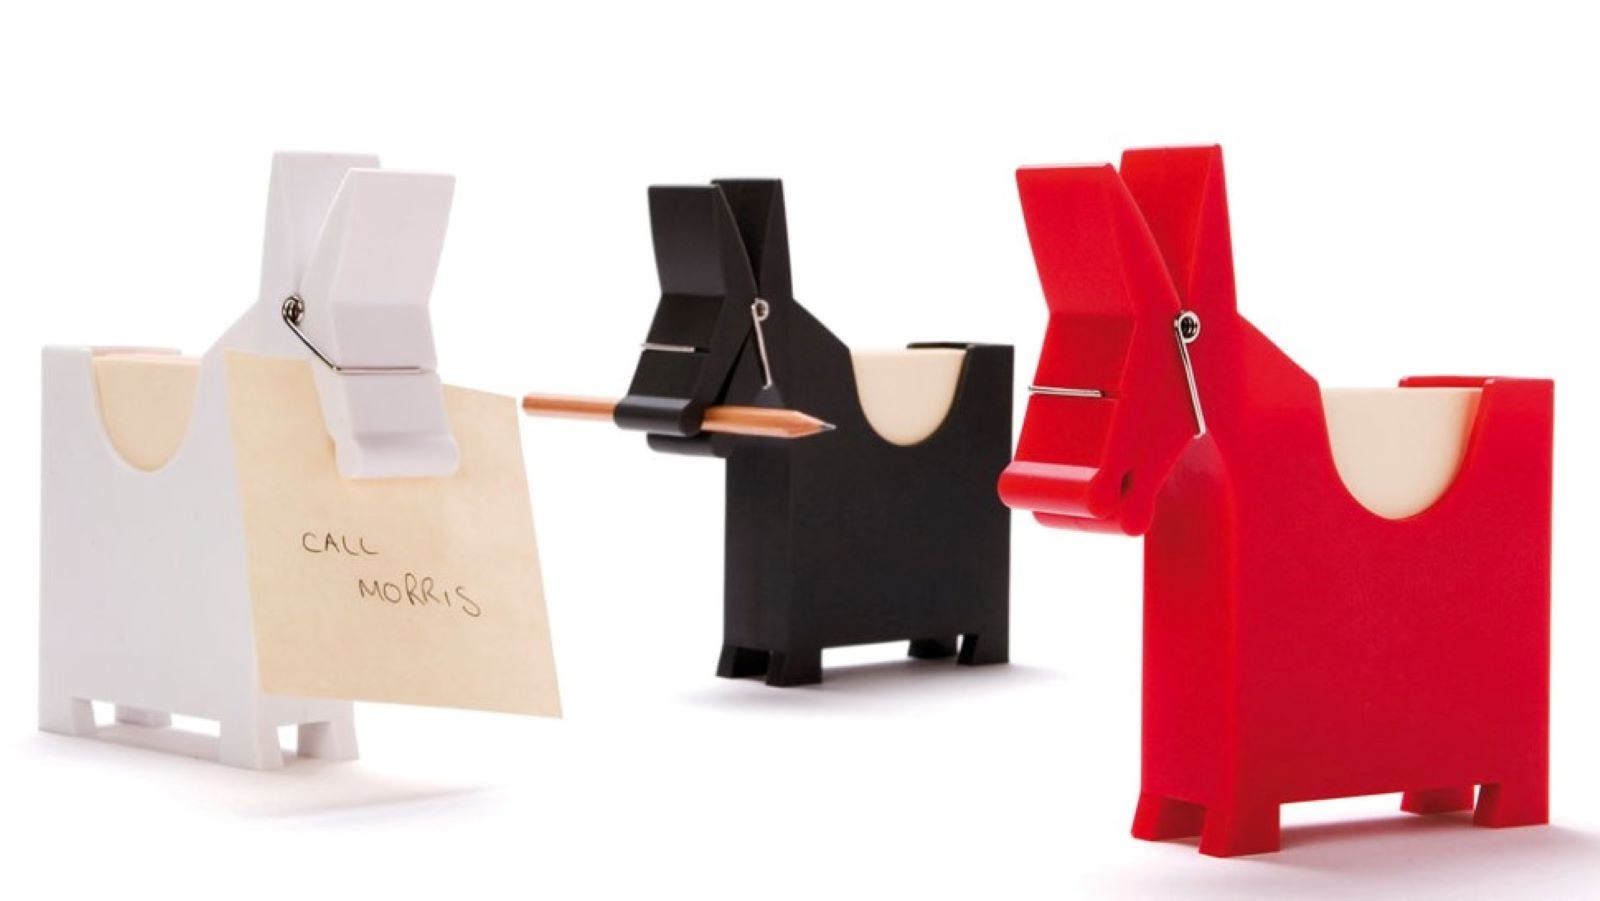 Three donkey-shaped sticky note holders in white, black, and red.